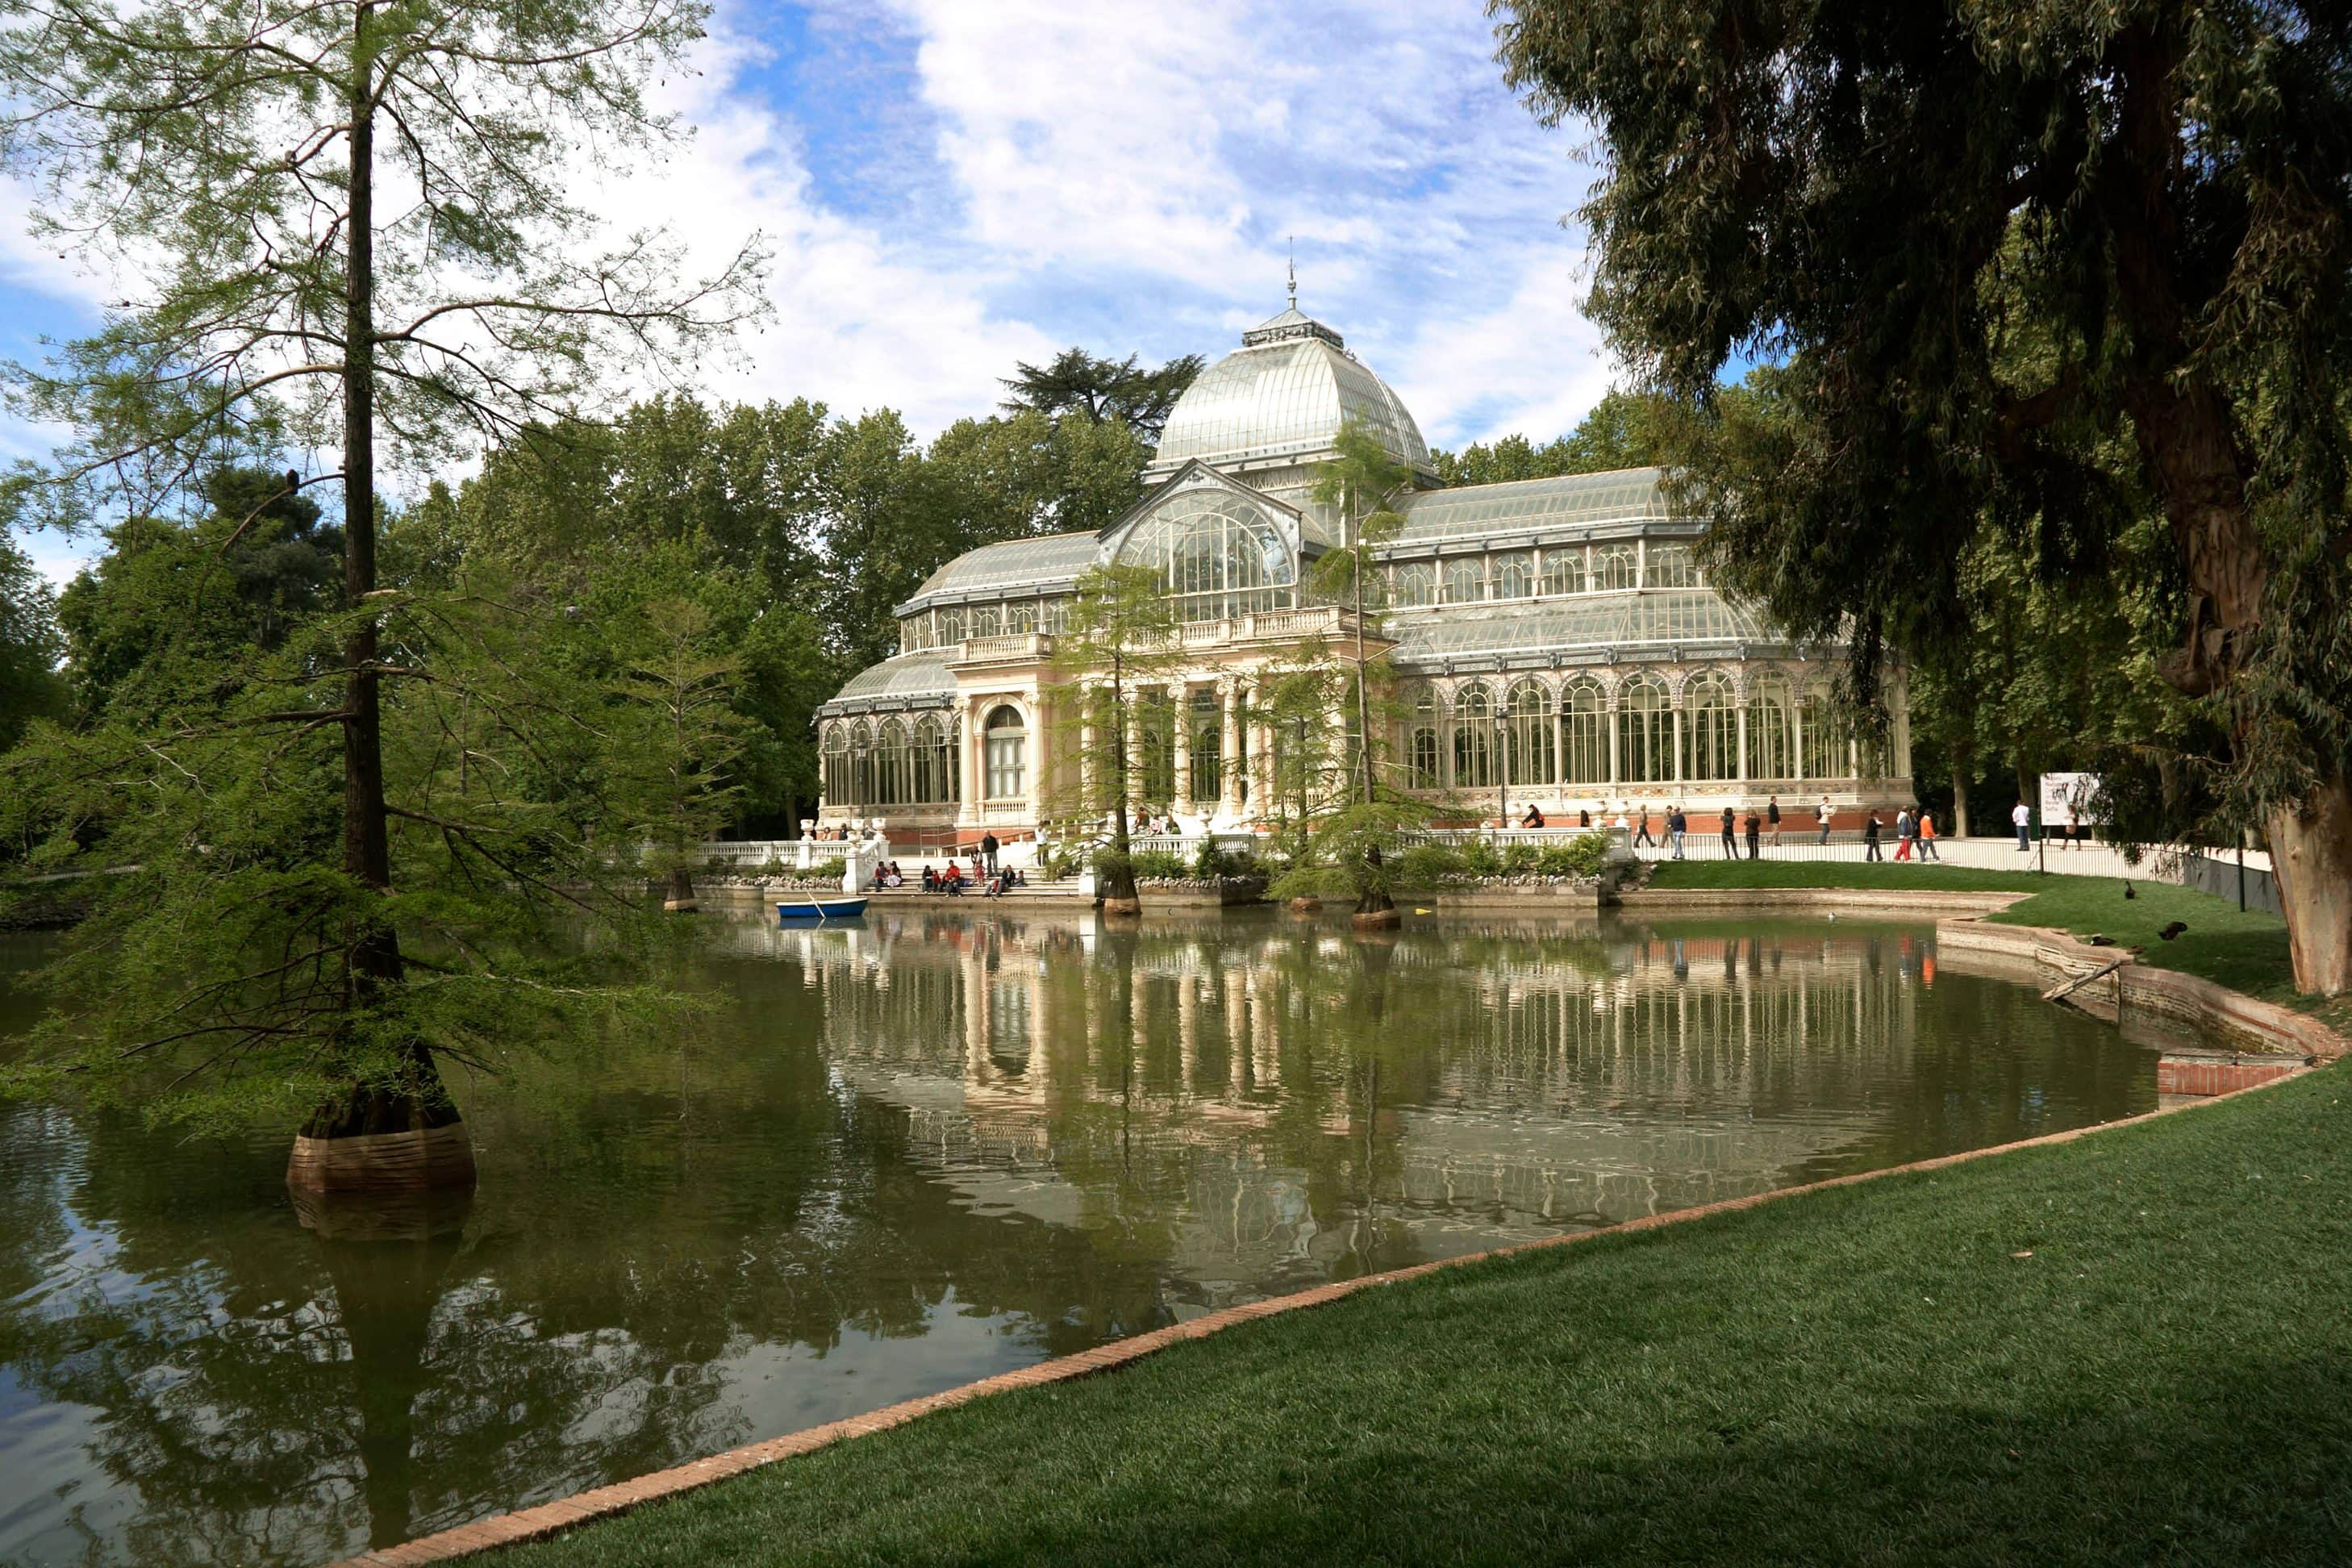 View of The Glass Palace overlooking the water in Retiro Park, Madrid